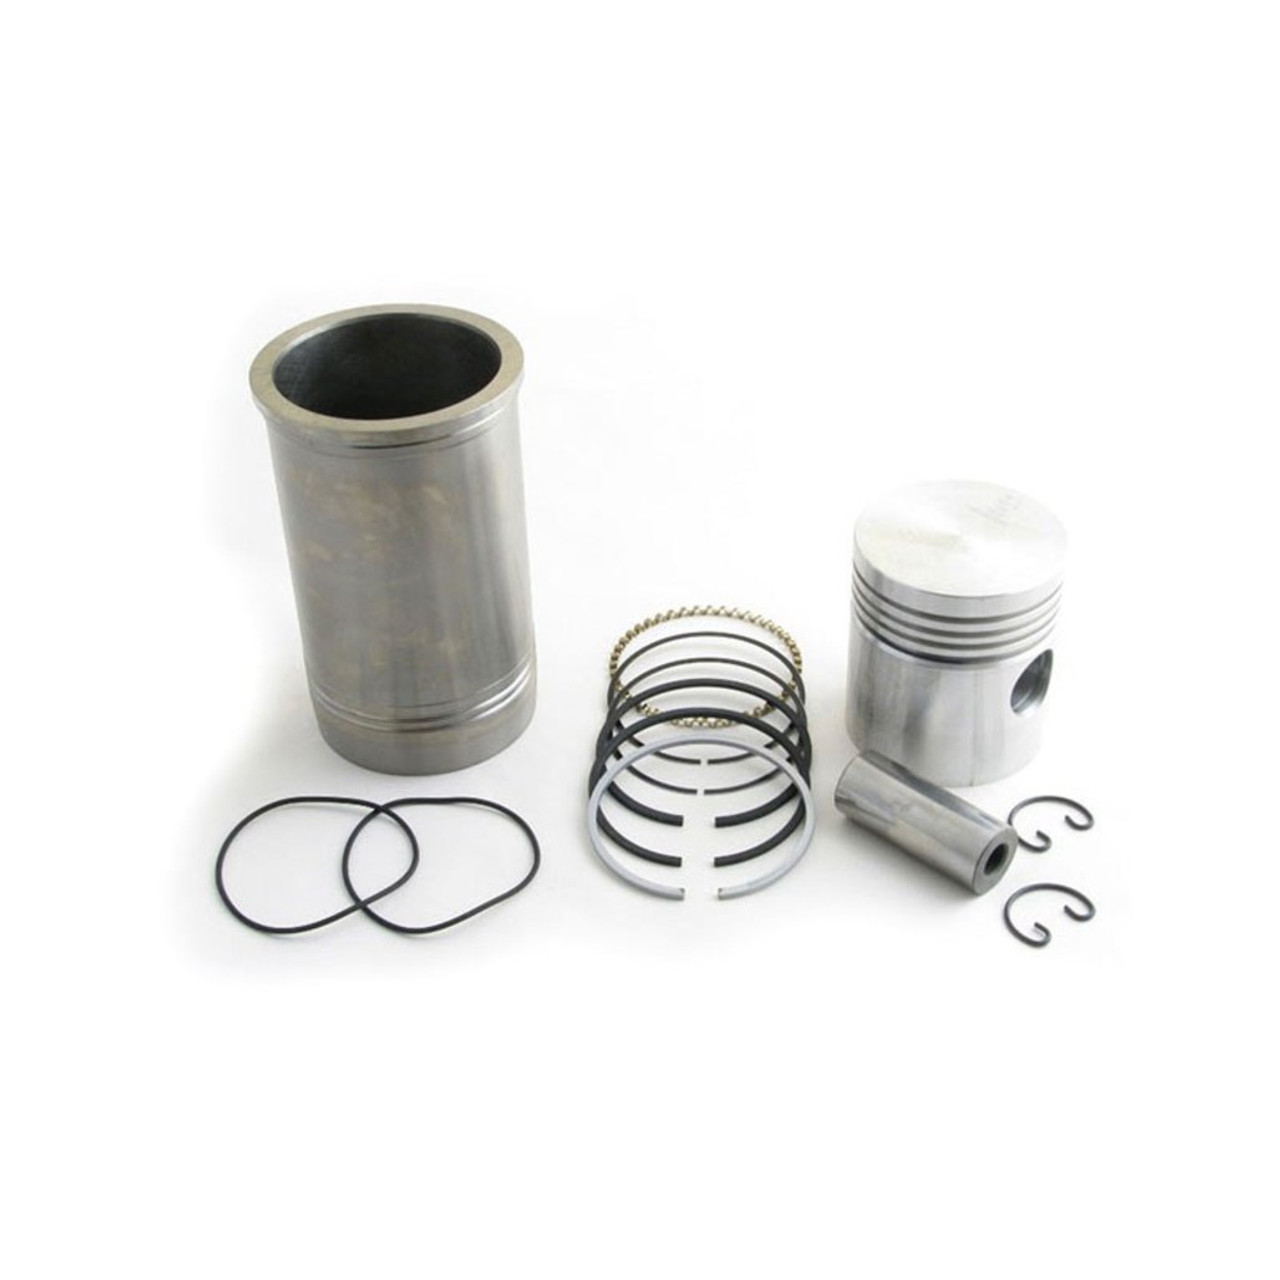 "Major Overhaul Kit 1600-1655 Gas 3 3/4"" Bore"